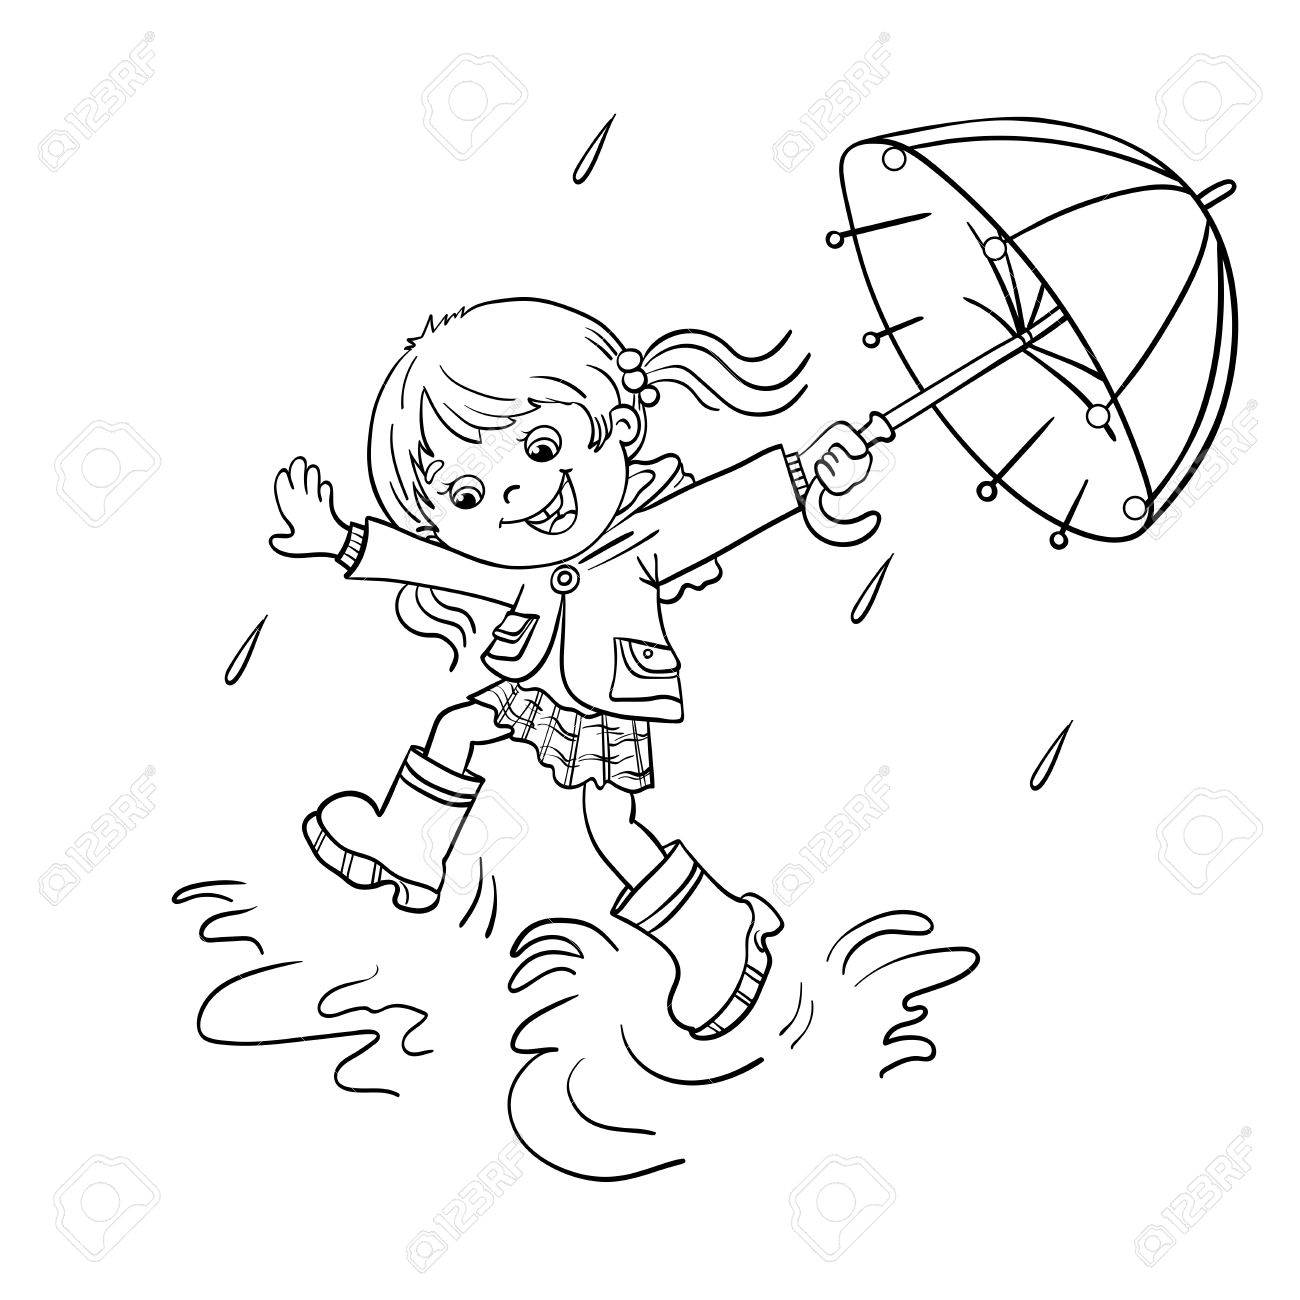 Coloring Page Outline Of A Cartoon Joyful Girl Jumping In The